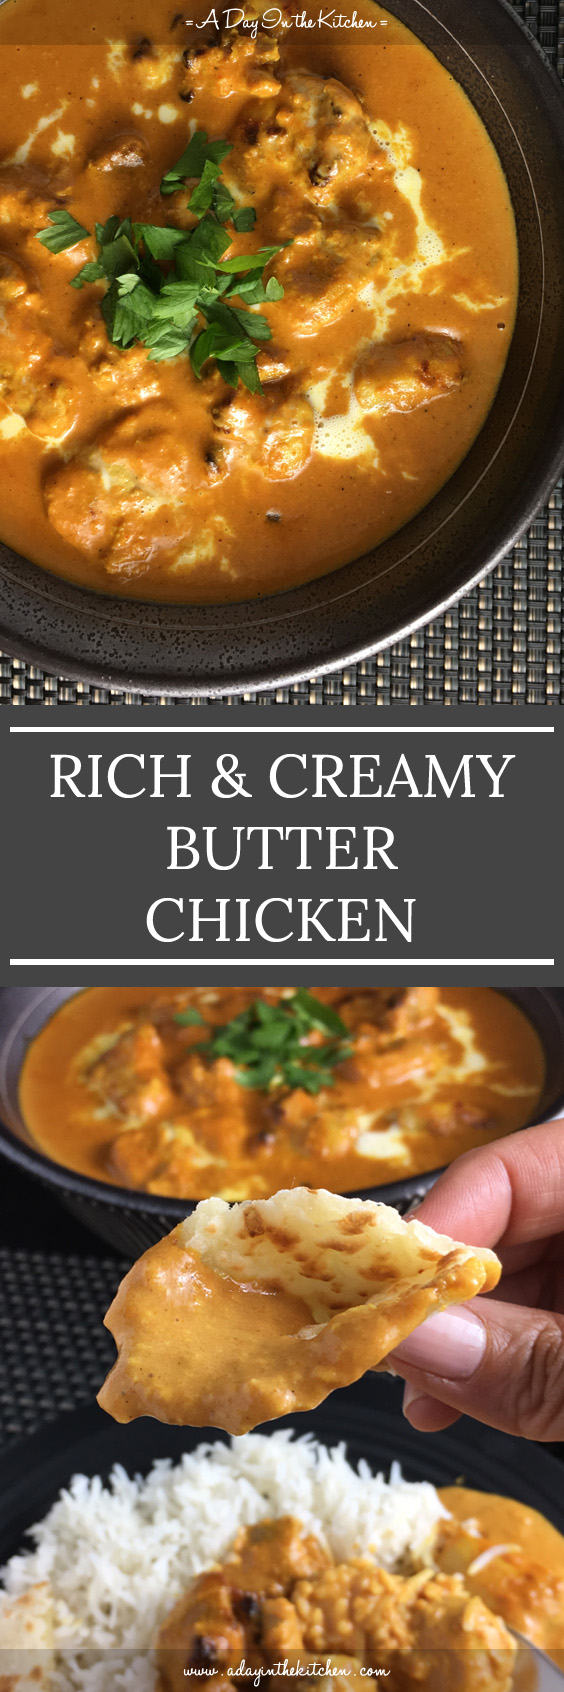 Rich and Creamy Butter Chicken - You won't want to go out for Indian anymore after you learn how to make this insanely yummy butter chicken right in your own home! #indian #butterchicken #glutenfree #chicken